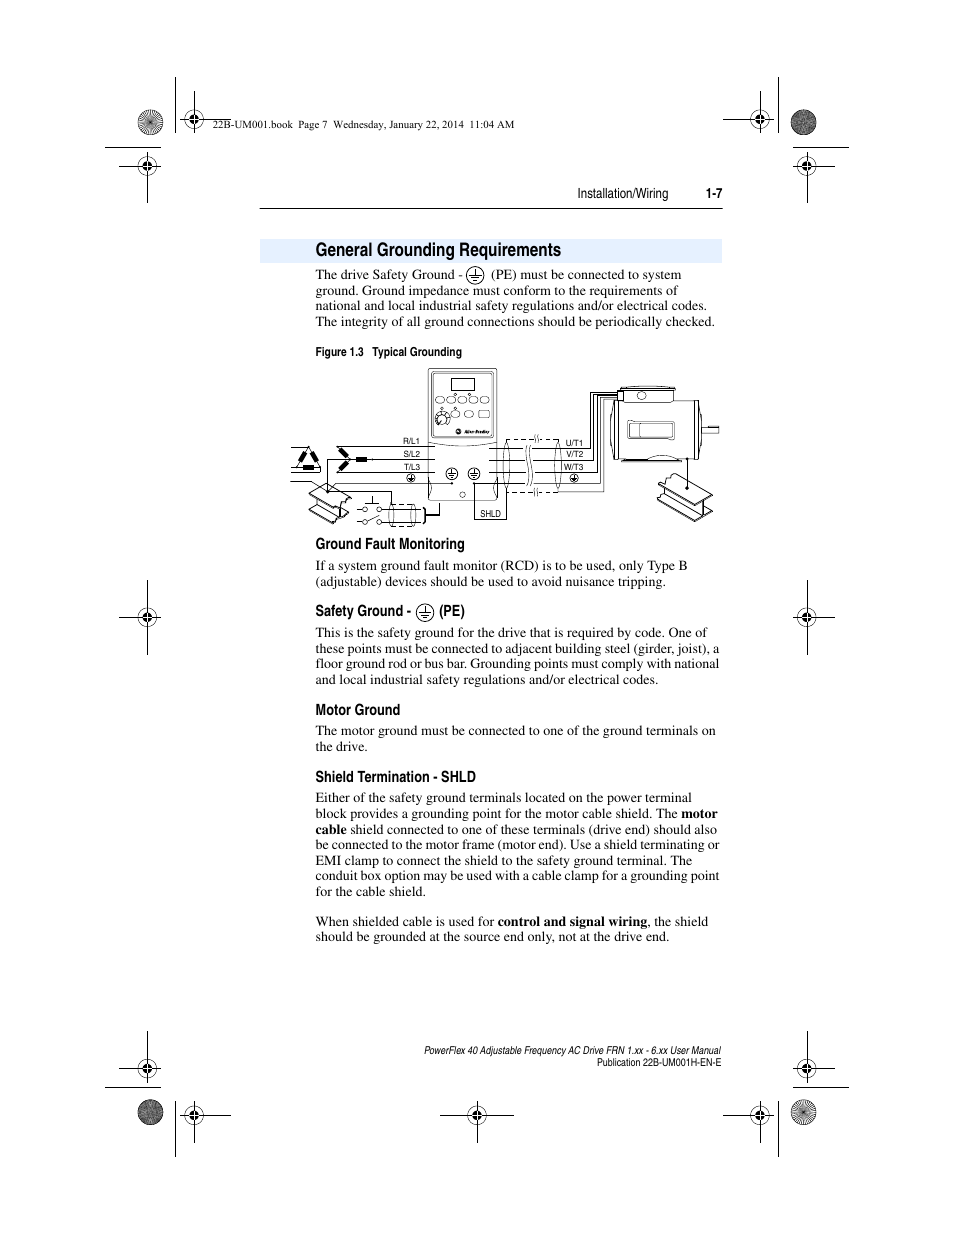 General Grounding Requirements Ground Fault Monitoring Safety 17 Edition Wiring Regulations Book Pe Rockwell Automation 22b Powerflex 40 Frn 1xx 6xx User Manual Page